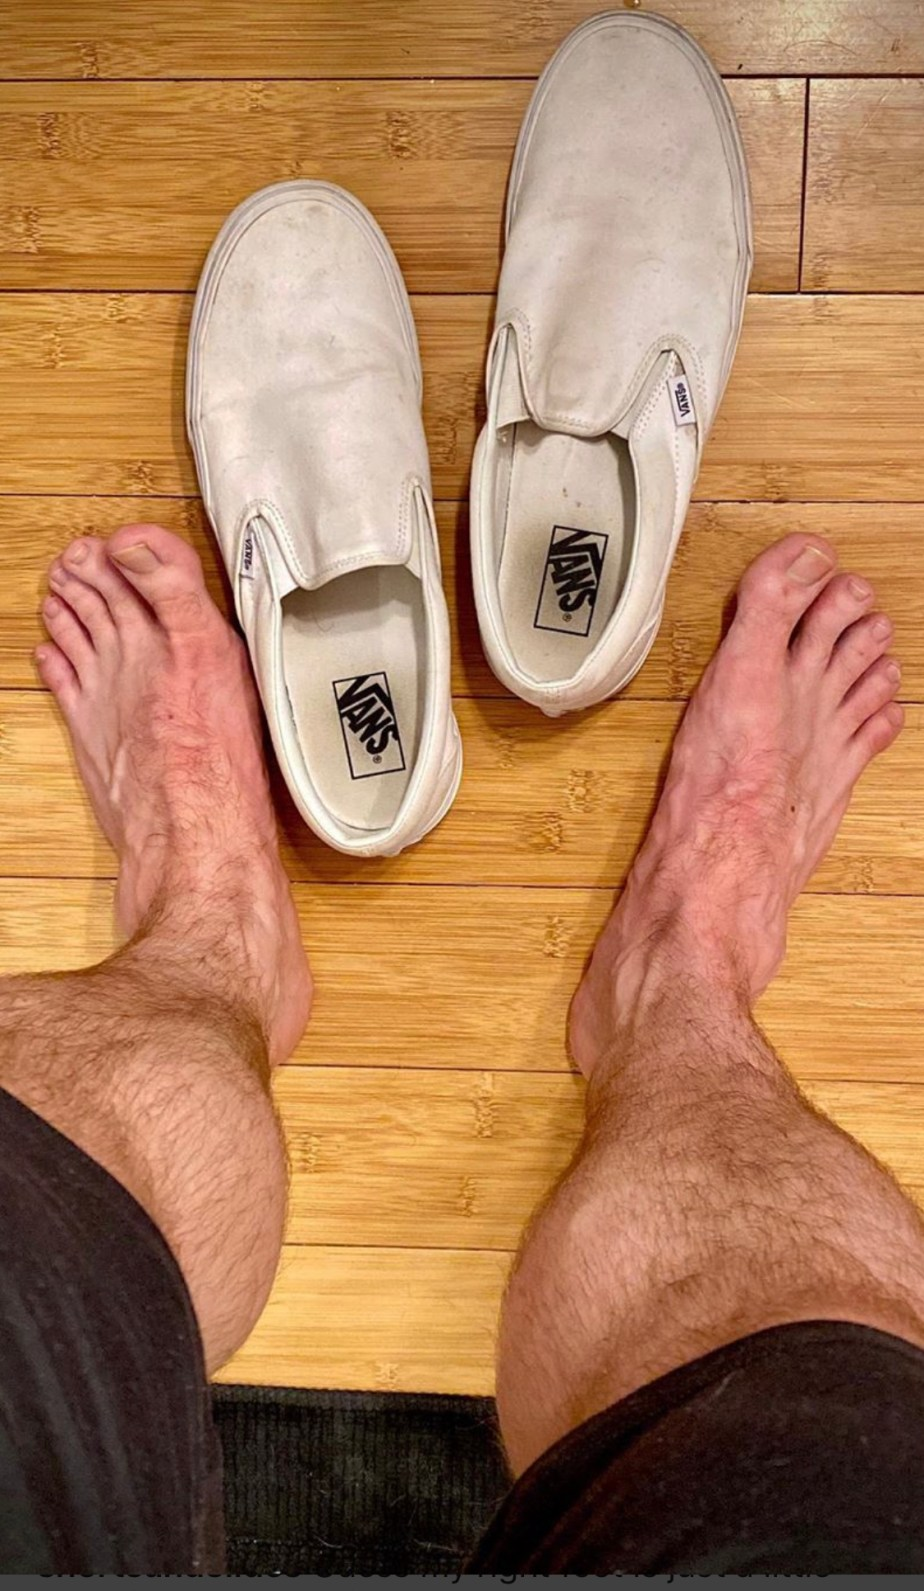 Shortsandslides' sockless size 13 feet out of Vans sneakers